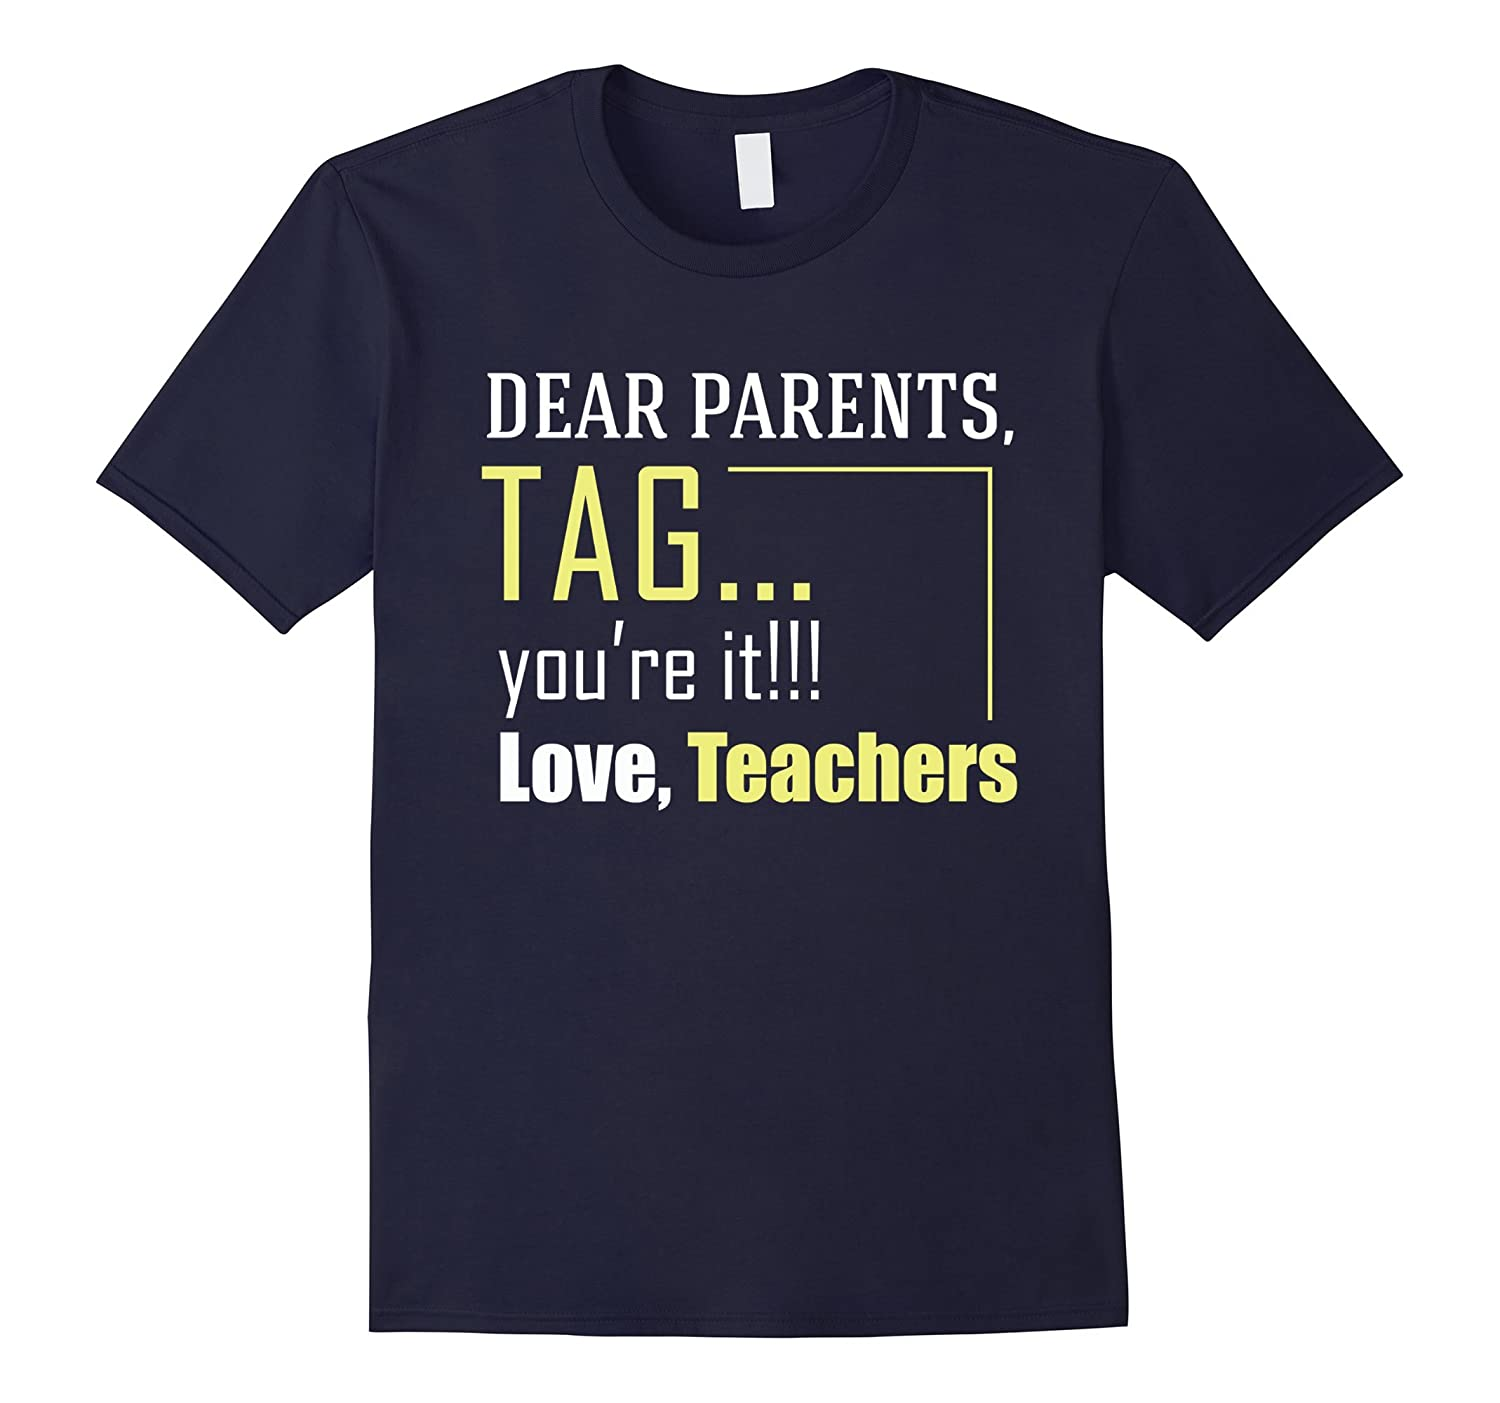 Dear Parents Tag youre it Love Teachers - Funny Last Day-Vaci